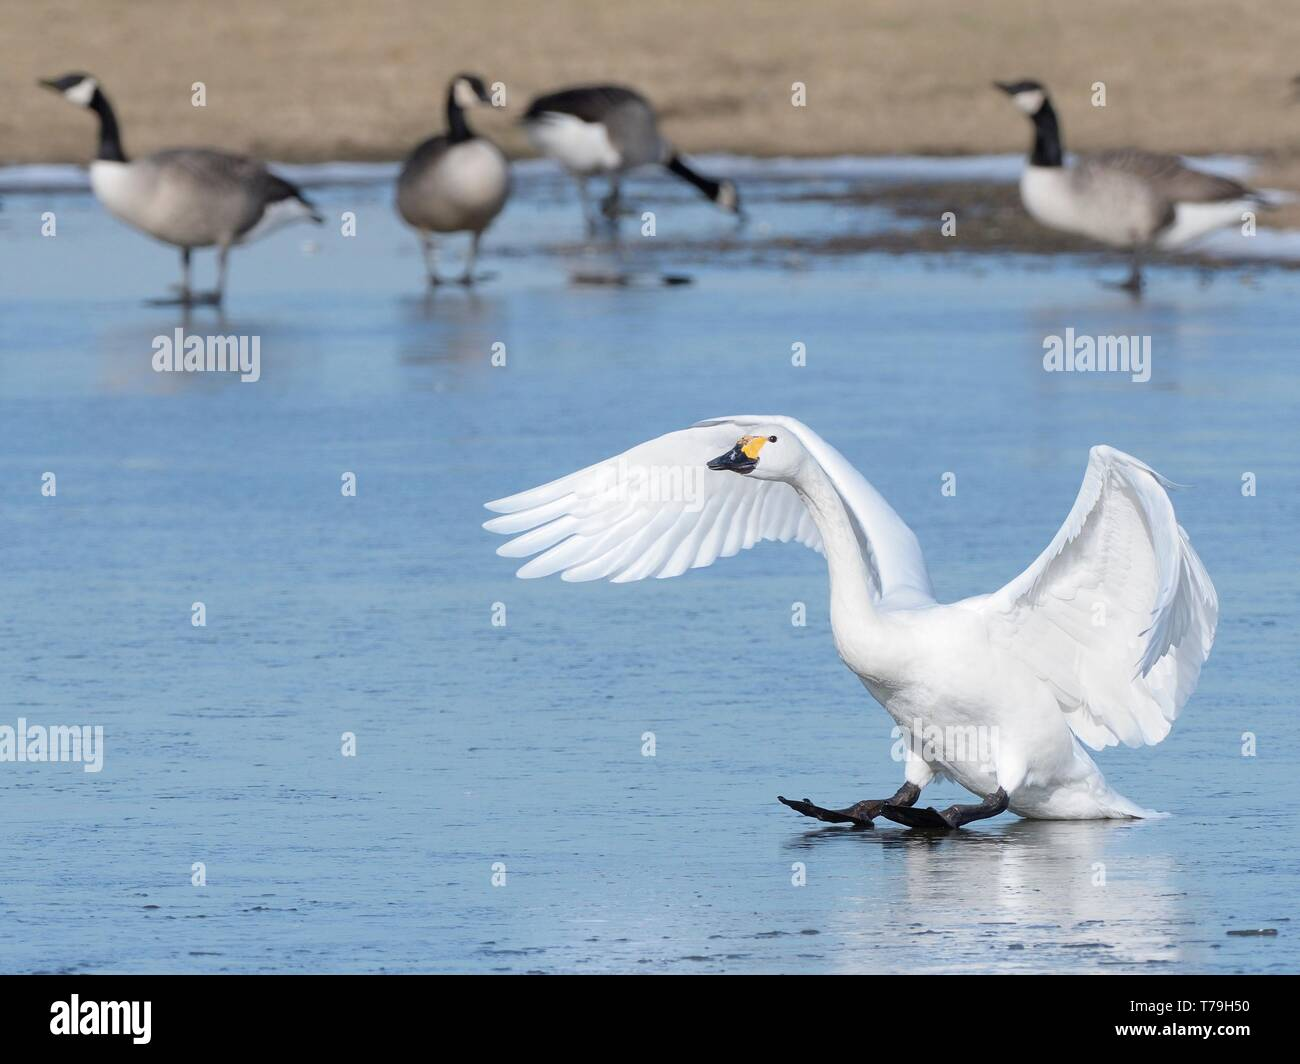 Bewick's swan (Cygnus columbiana bewickii) sliding on ice after landing on a frozen marshland pool with Canada geese (Branta canadensis) in the backgr - Stock Image